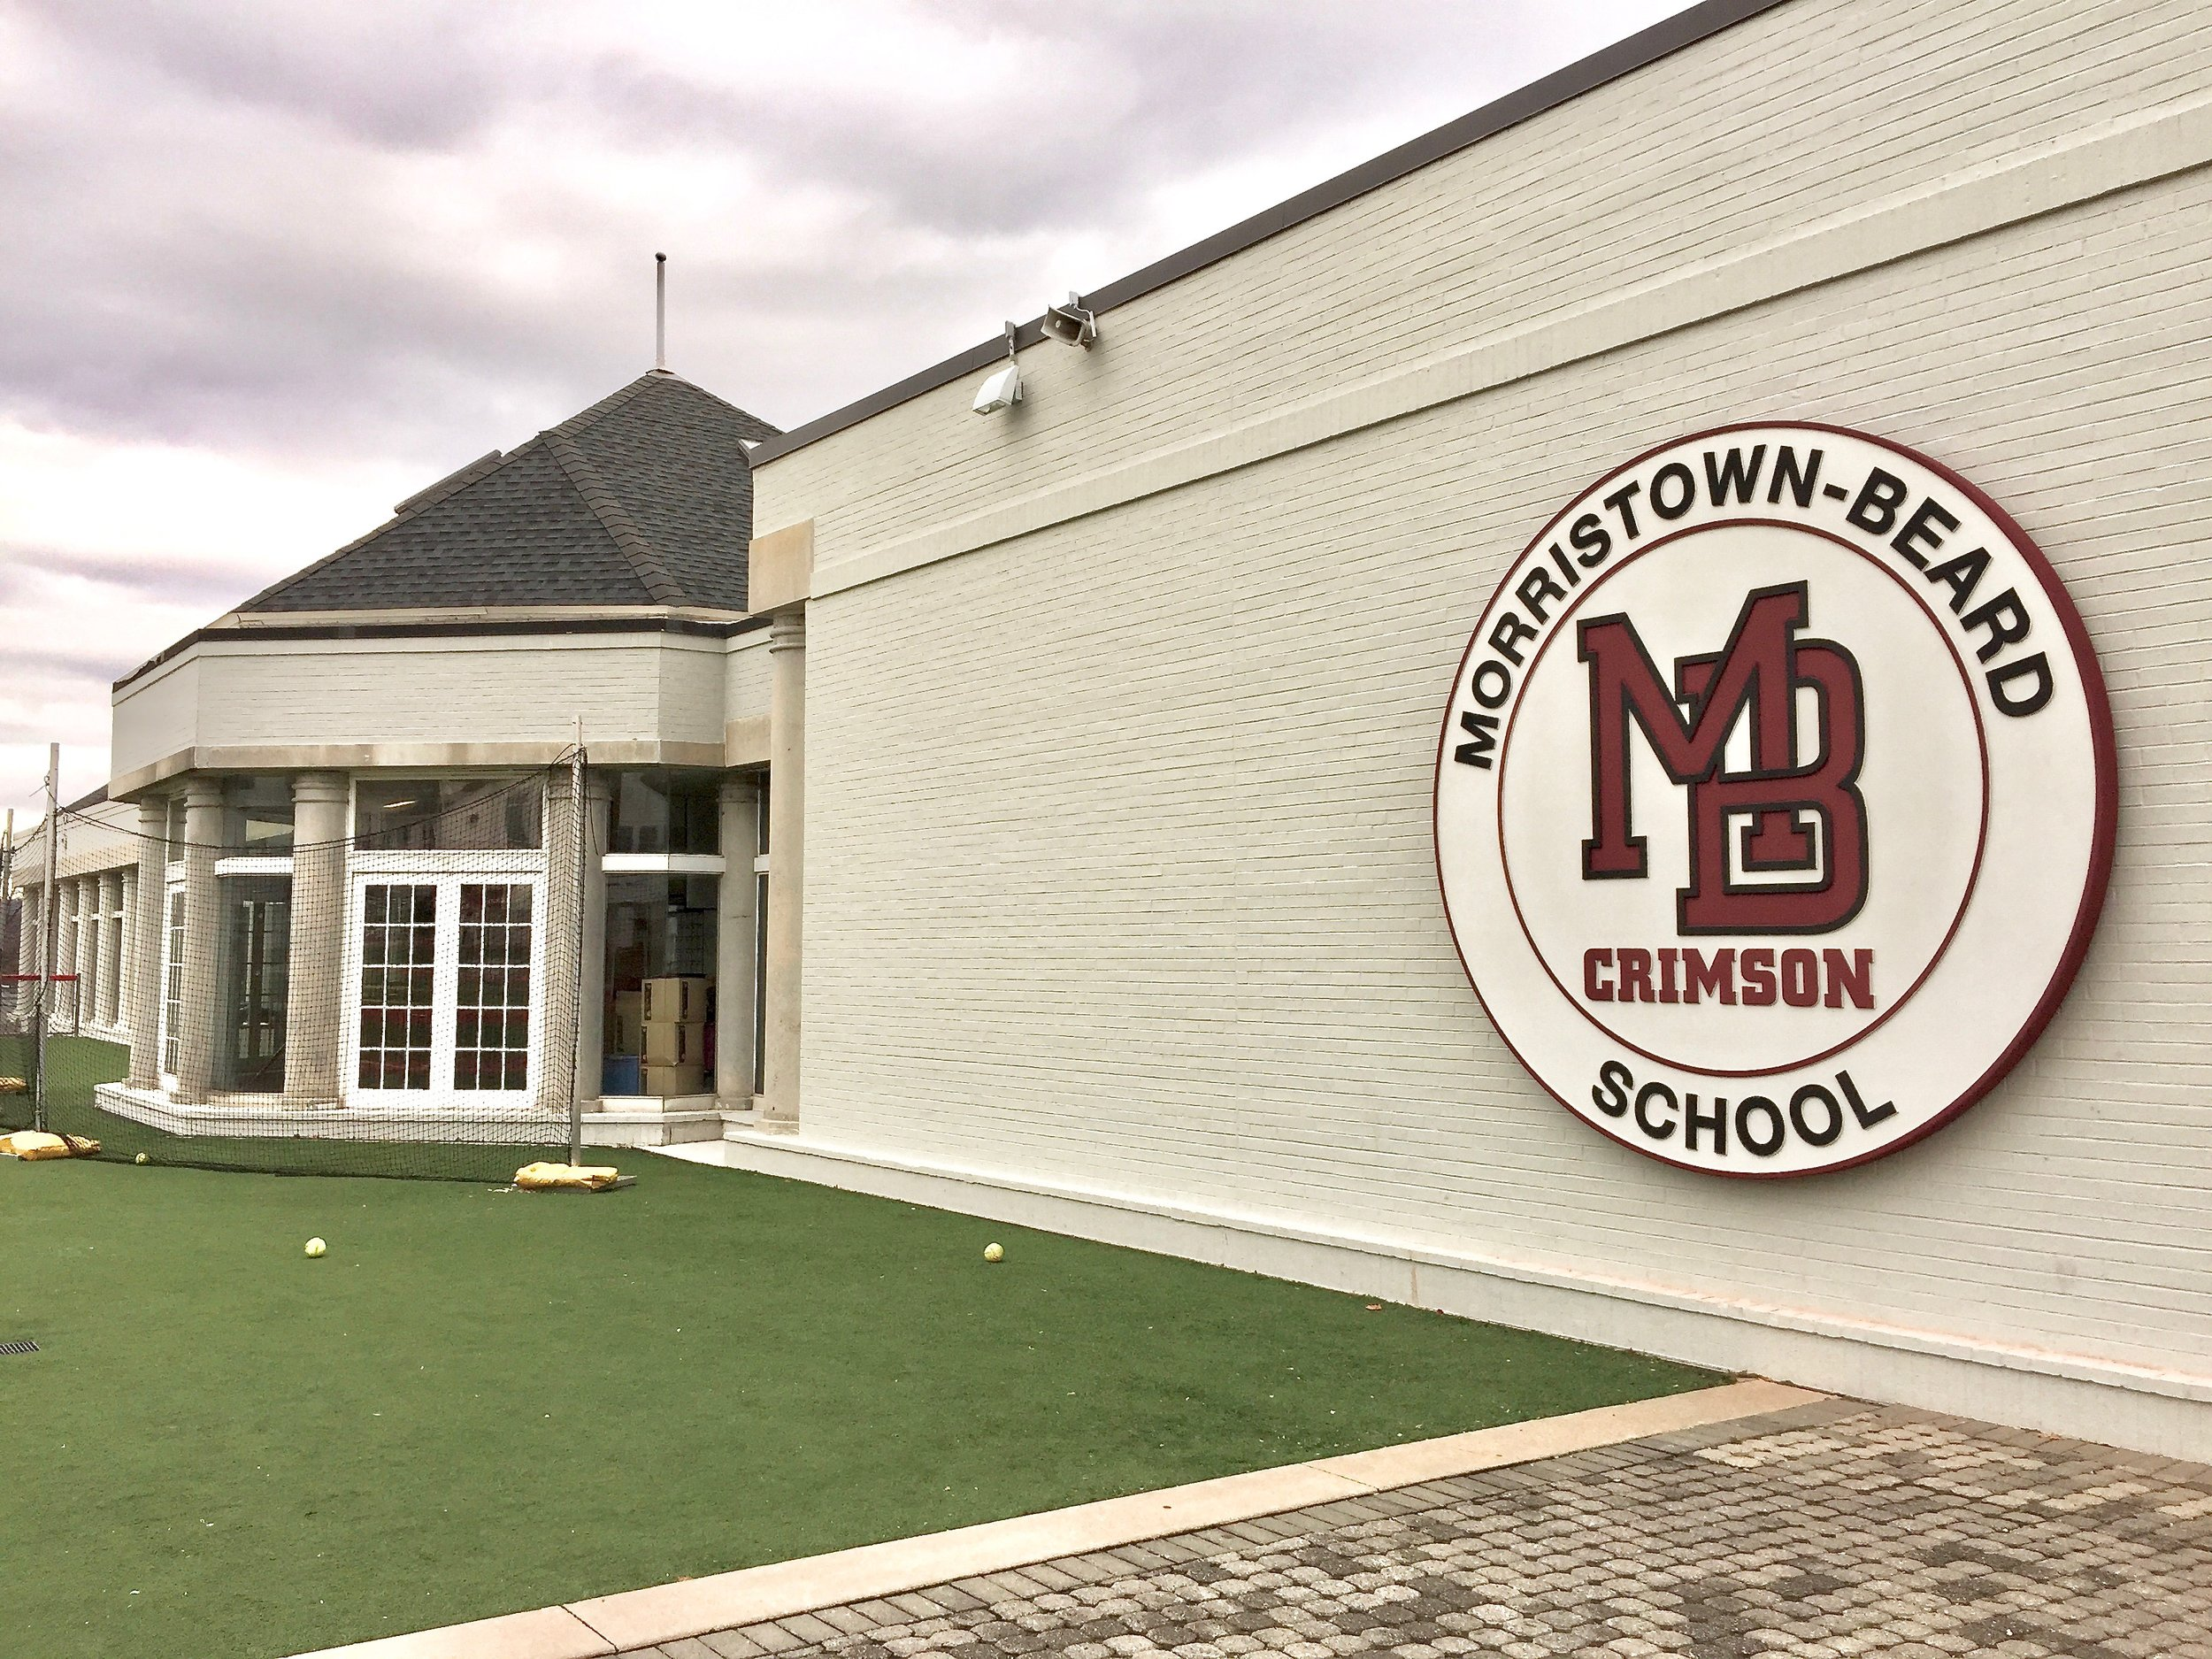 We were commissioned by Morristown-Beard School, a private school in Morristown, NJ to to carve and install this large scale medallion to face its main building and athletic field. It was carved out of flexible foam and given a flexible hardcoat with a stucco finish on top making it blend in perfectly with its painted masonry background. The flexible core of this carved sign allow it to take an occasional hit from from a foul ball and bounce back as if nothing happened. Basiically it looks great and can take a punch.